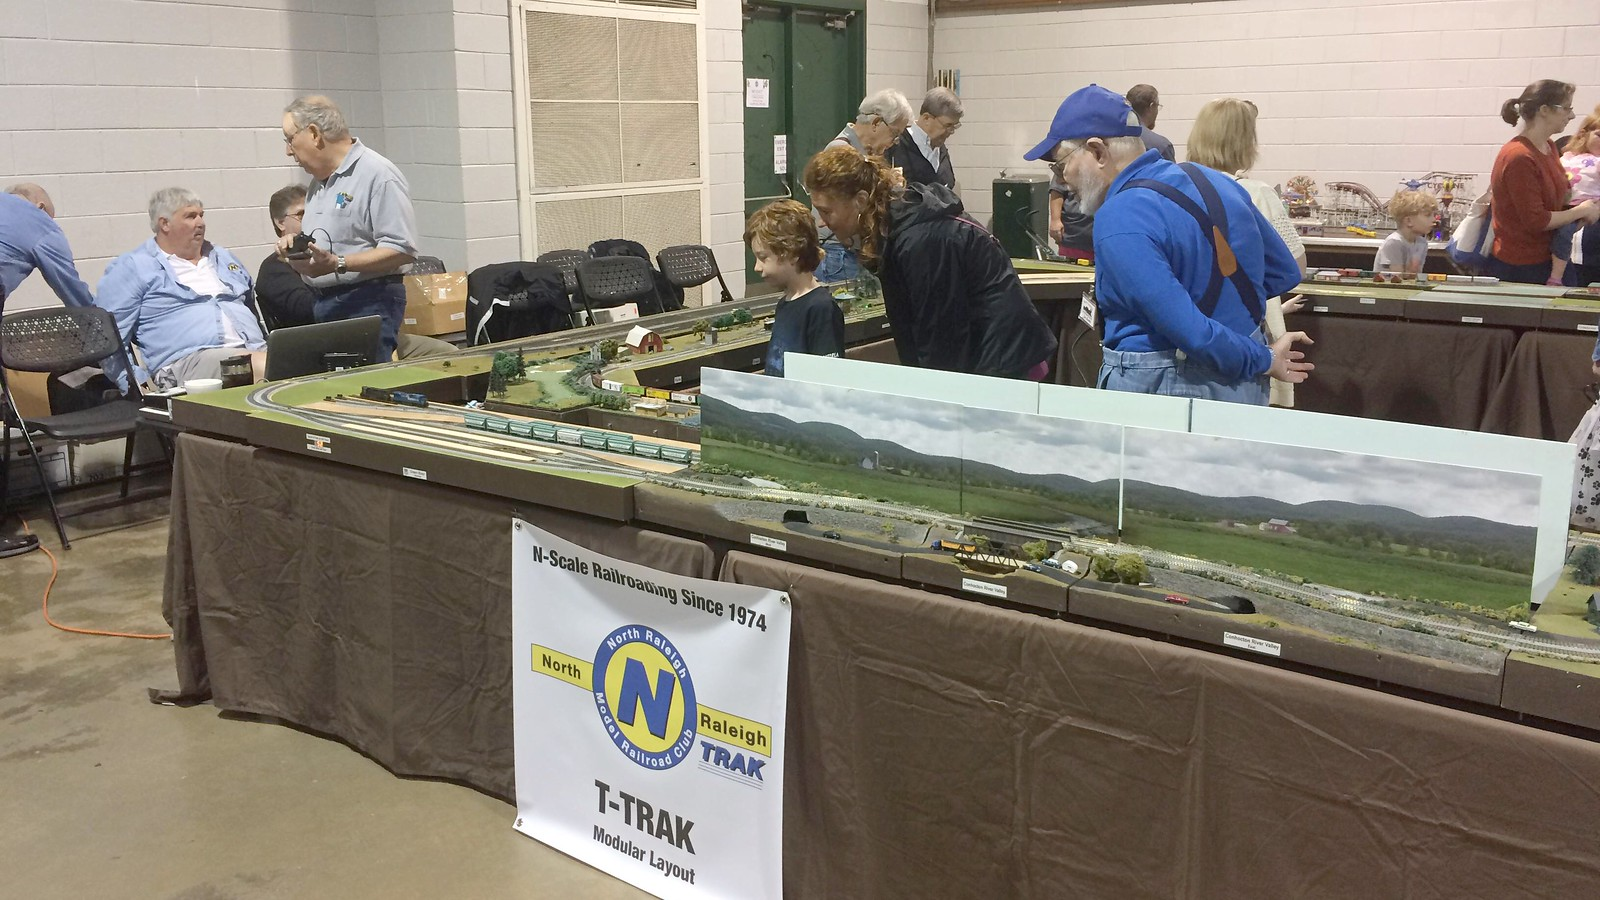 On May 6, 2017, the North Raleigh Model Railroad Club displayed a T-TRAK layout at the Spring TCA show at the North Carolina State Fairgrounds